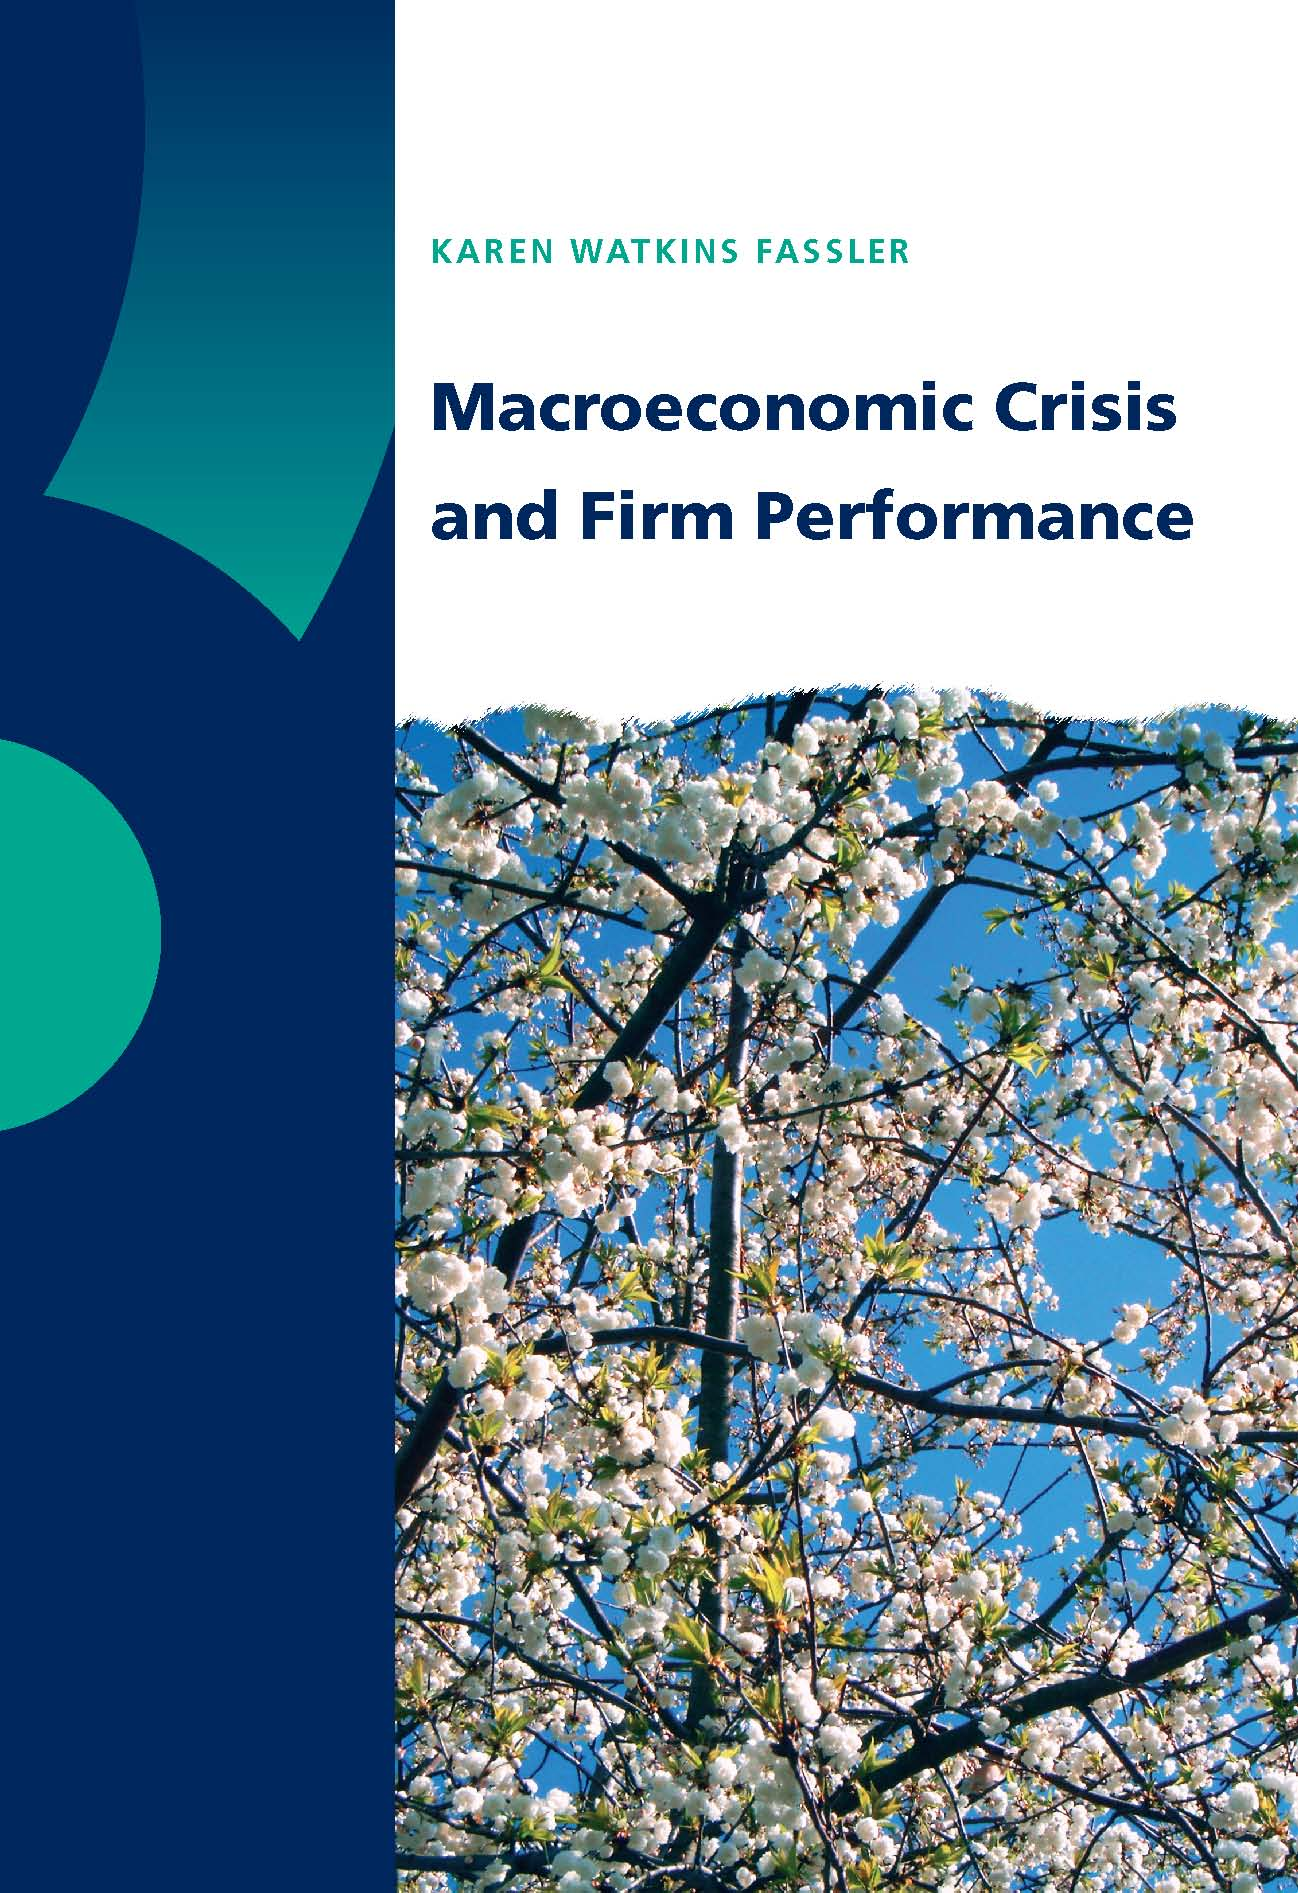 Macroeconomic Crisis and Firm Performance